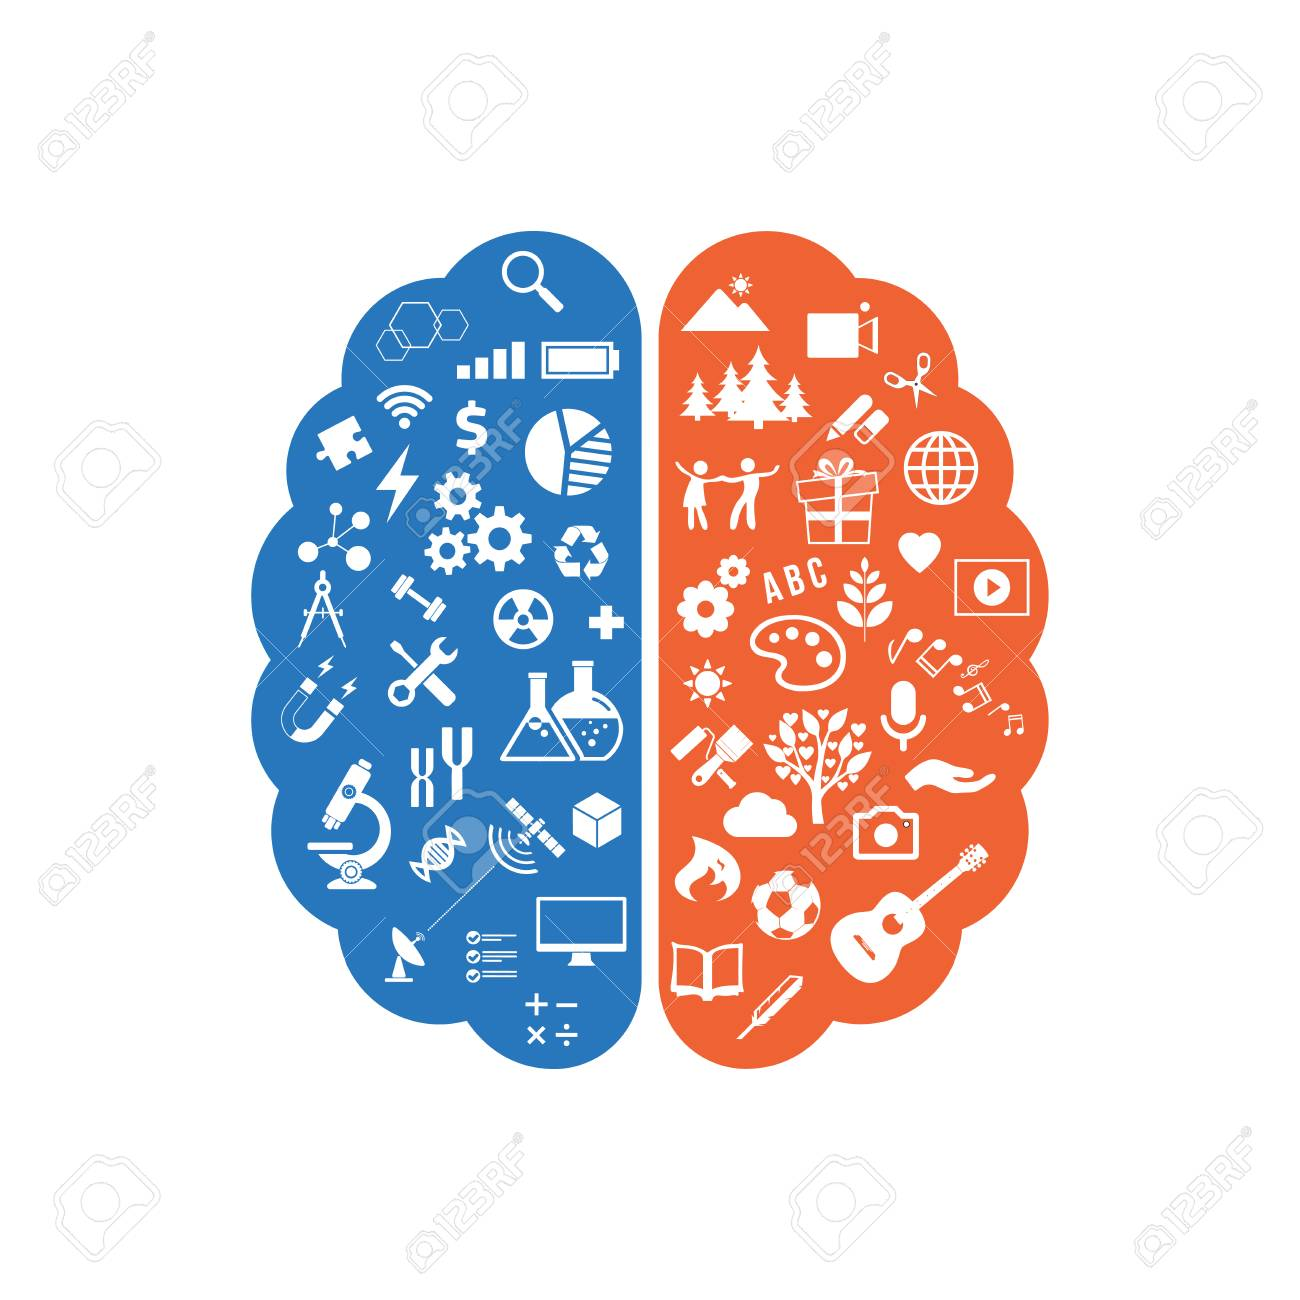 Abstract human brain with the icons of art and science. The concept of work left and right sides of the human brain. Education icons. Vector illustration - 101290390